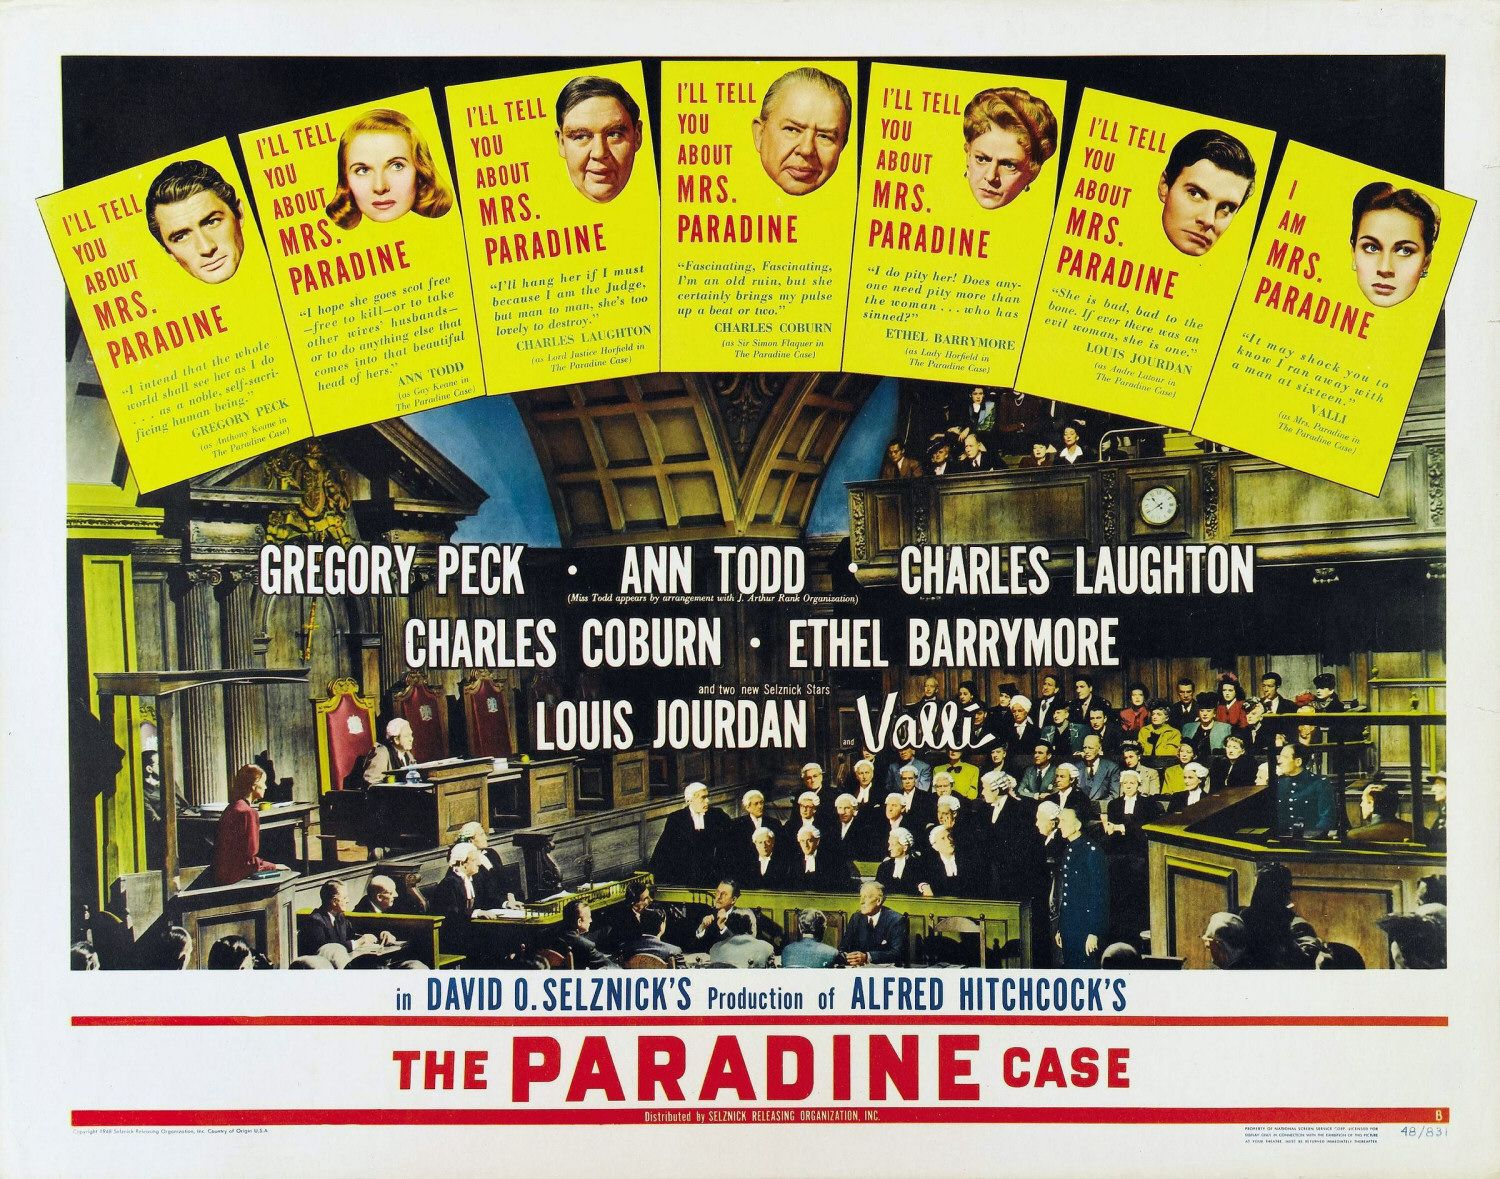 The Paradine Case (1974) - Gregory Peck, Ann Todd, Valli, Charles Laughton, Charles Coburn, Ethel Barrymore, Luois Jourdan